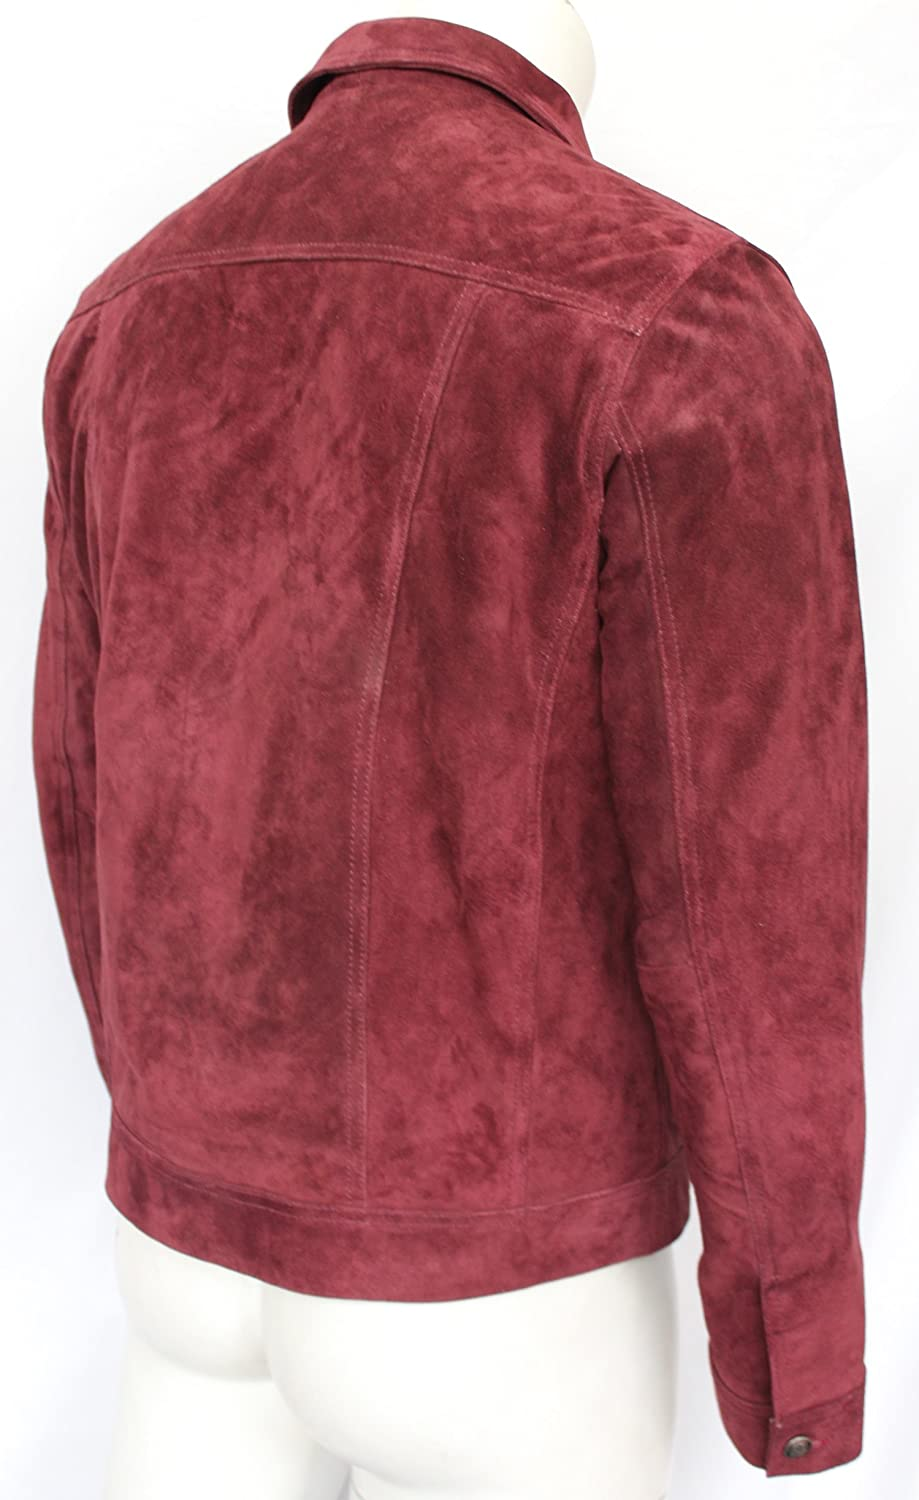 Mens 1280 MAROON Suede Trucker Stylish Classic Casual Shirt Real Leather Jacket